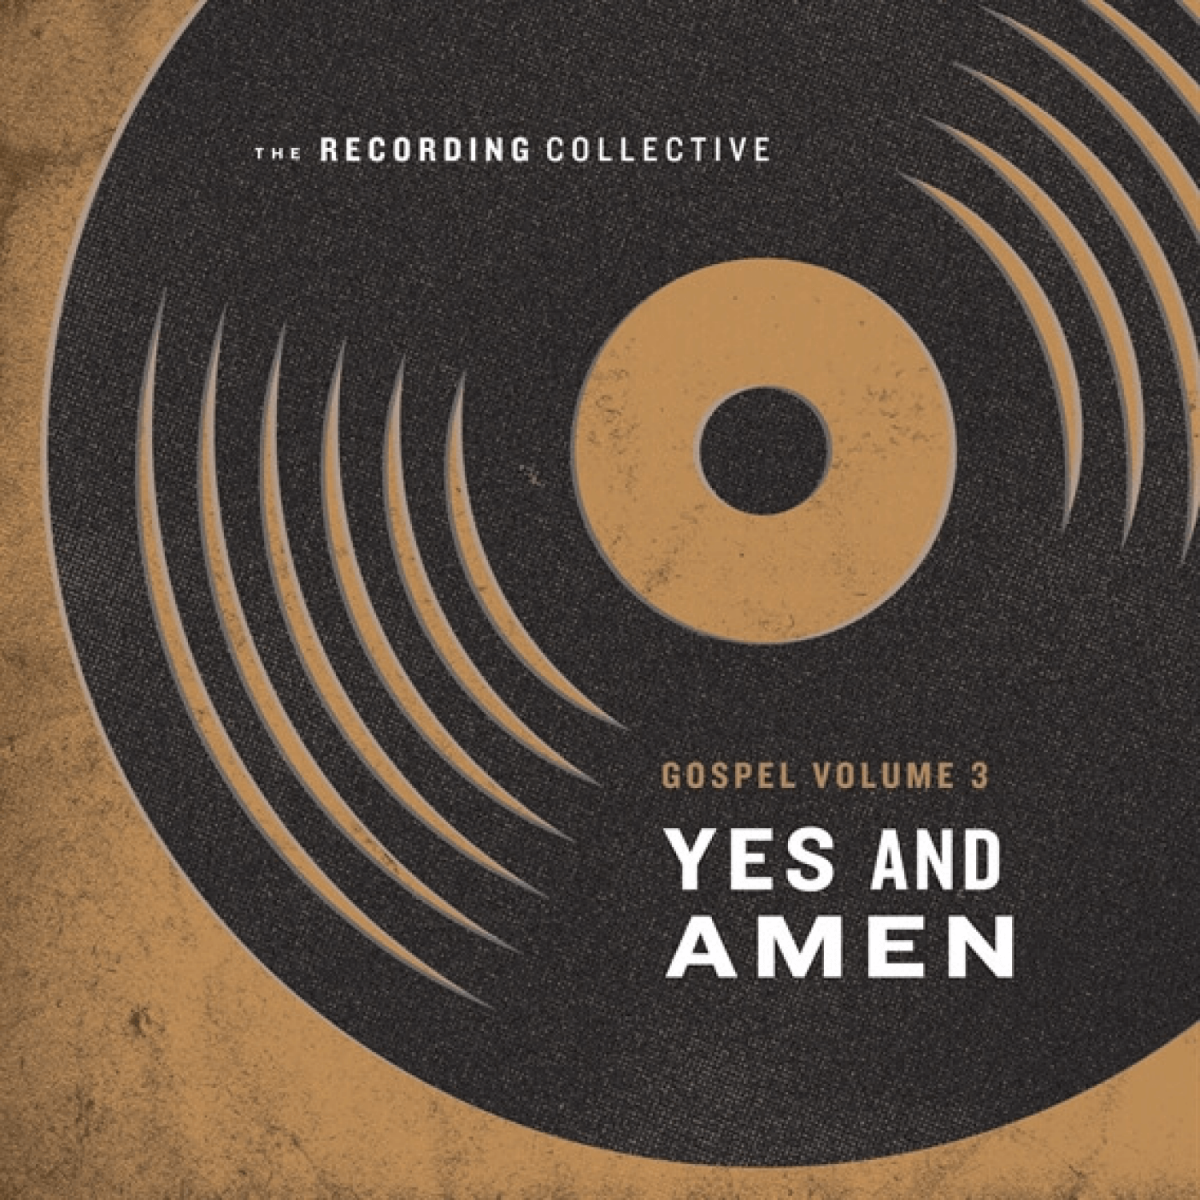 gospel vol. 3 - yes and amen